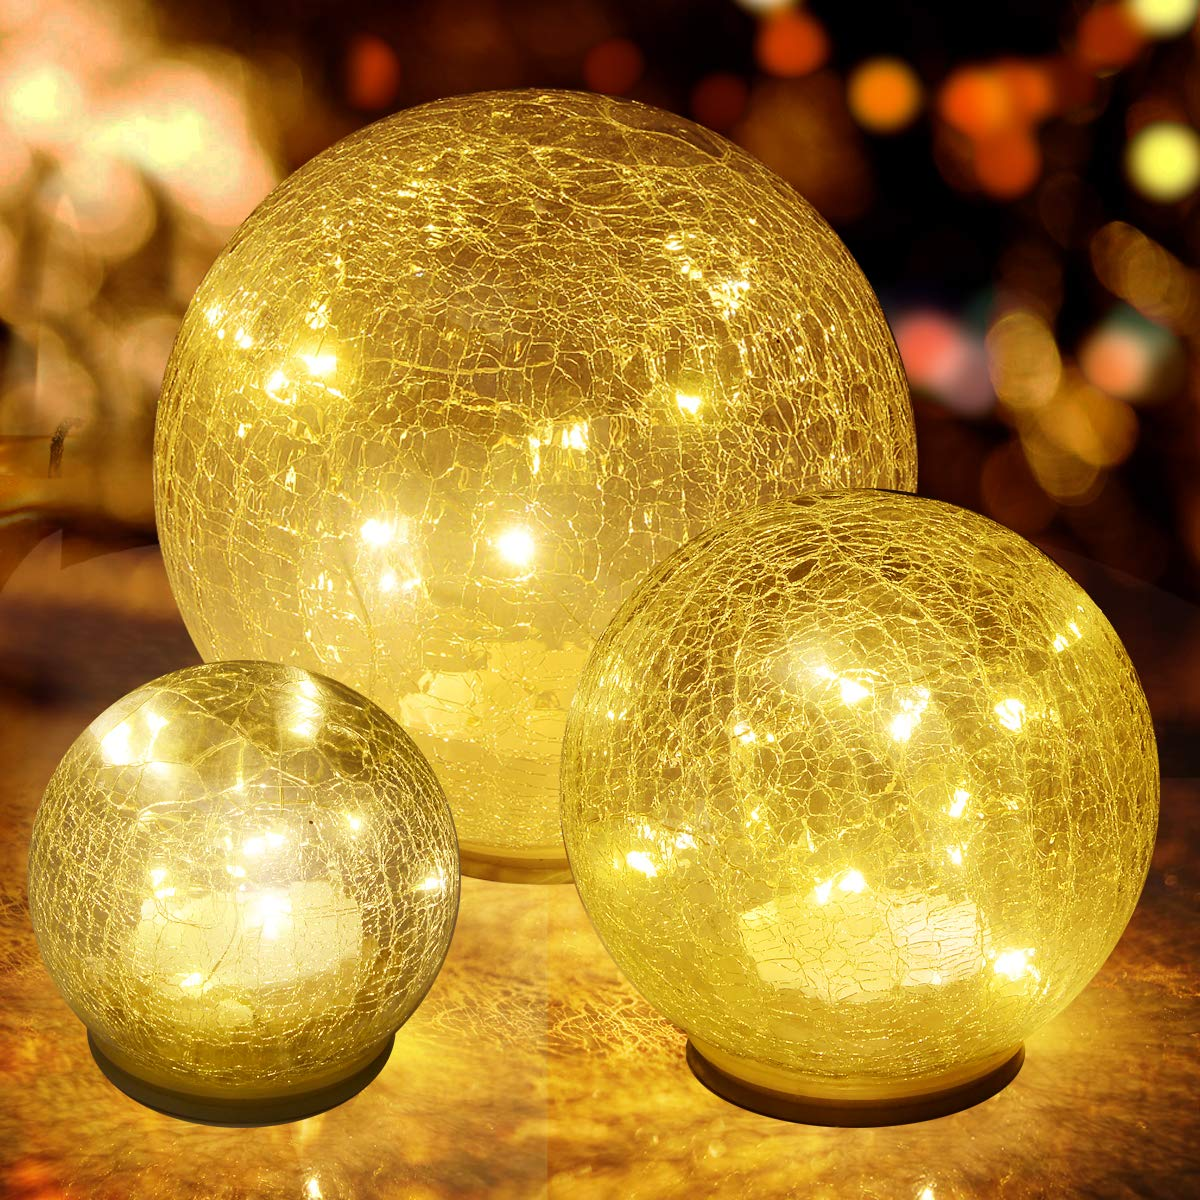 Glass Ball LED Light Christmas Wireless Crackle Glass Light Warm White Night Lamp for Bedroom Living-Room Dresser Nursery Kitchen Garden Restaurant Modern Glass Decoration Glass Craft 3 Pack